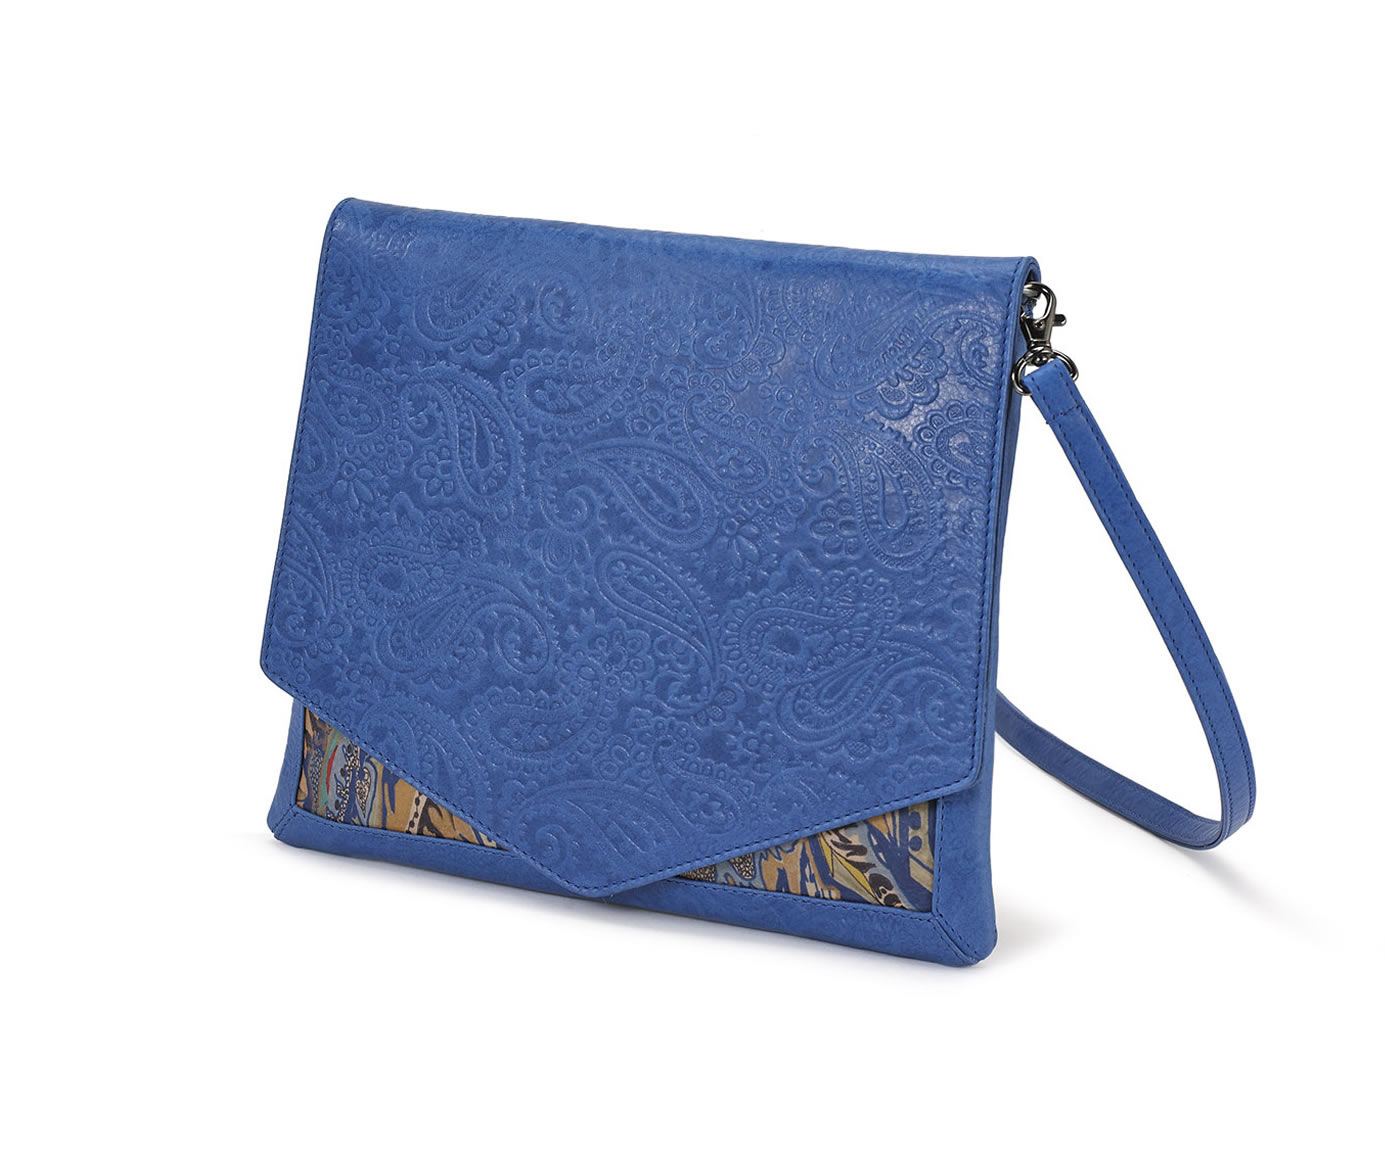 CROSSBODY BLUE EMBOSSED MIRACLES 1